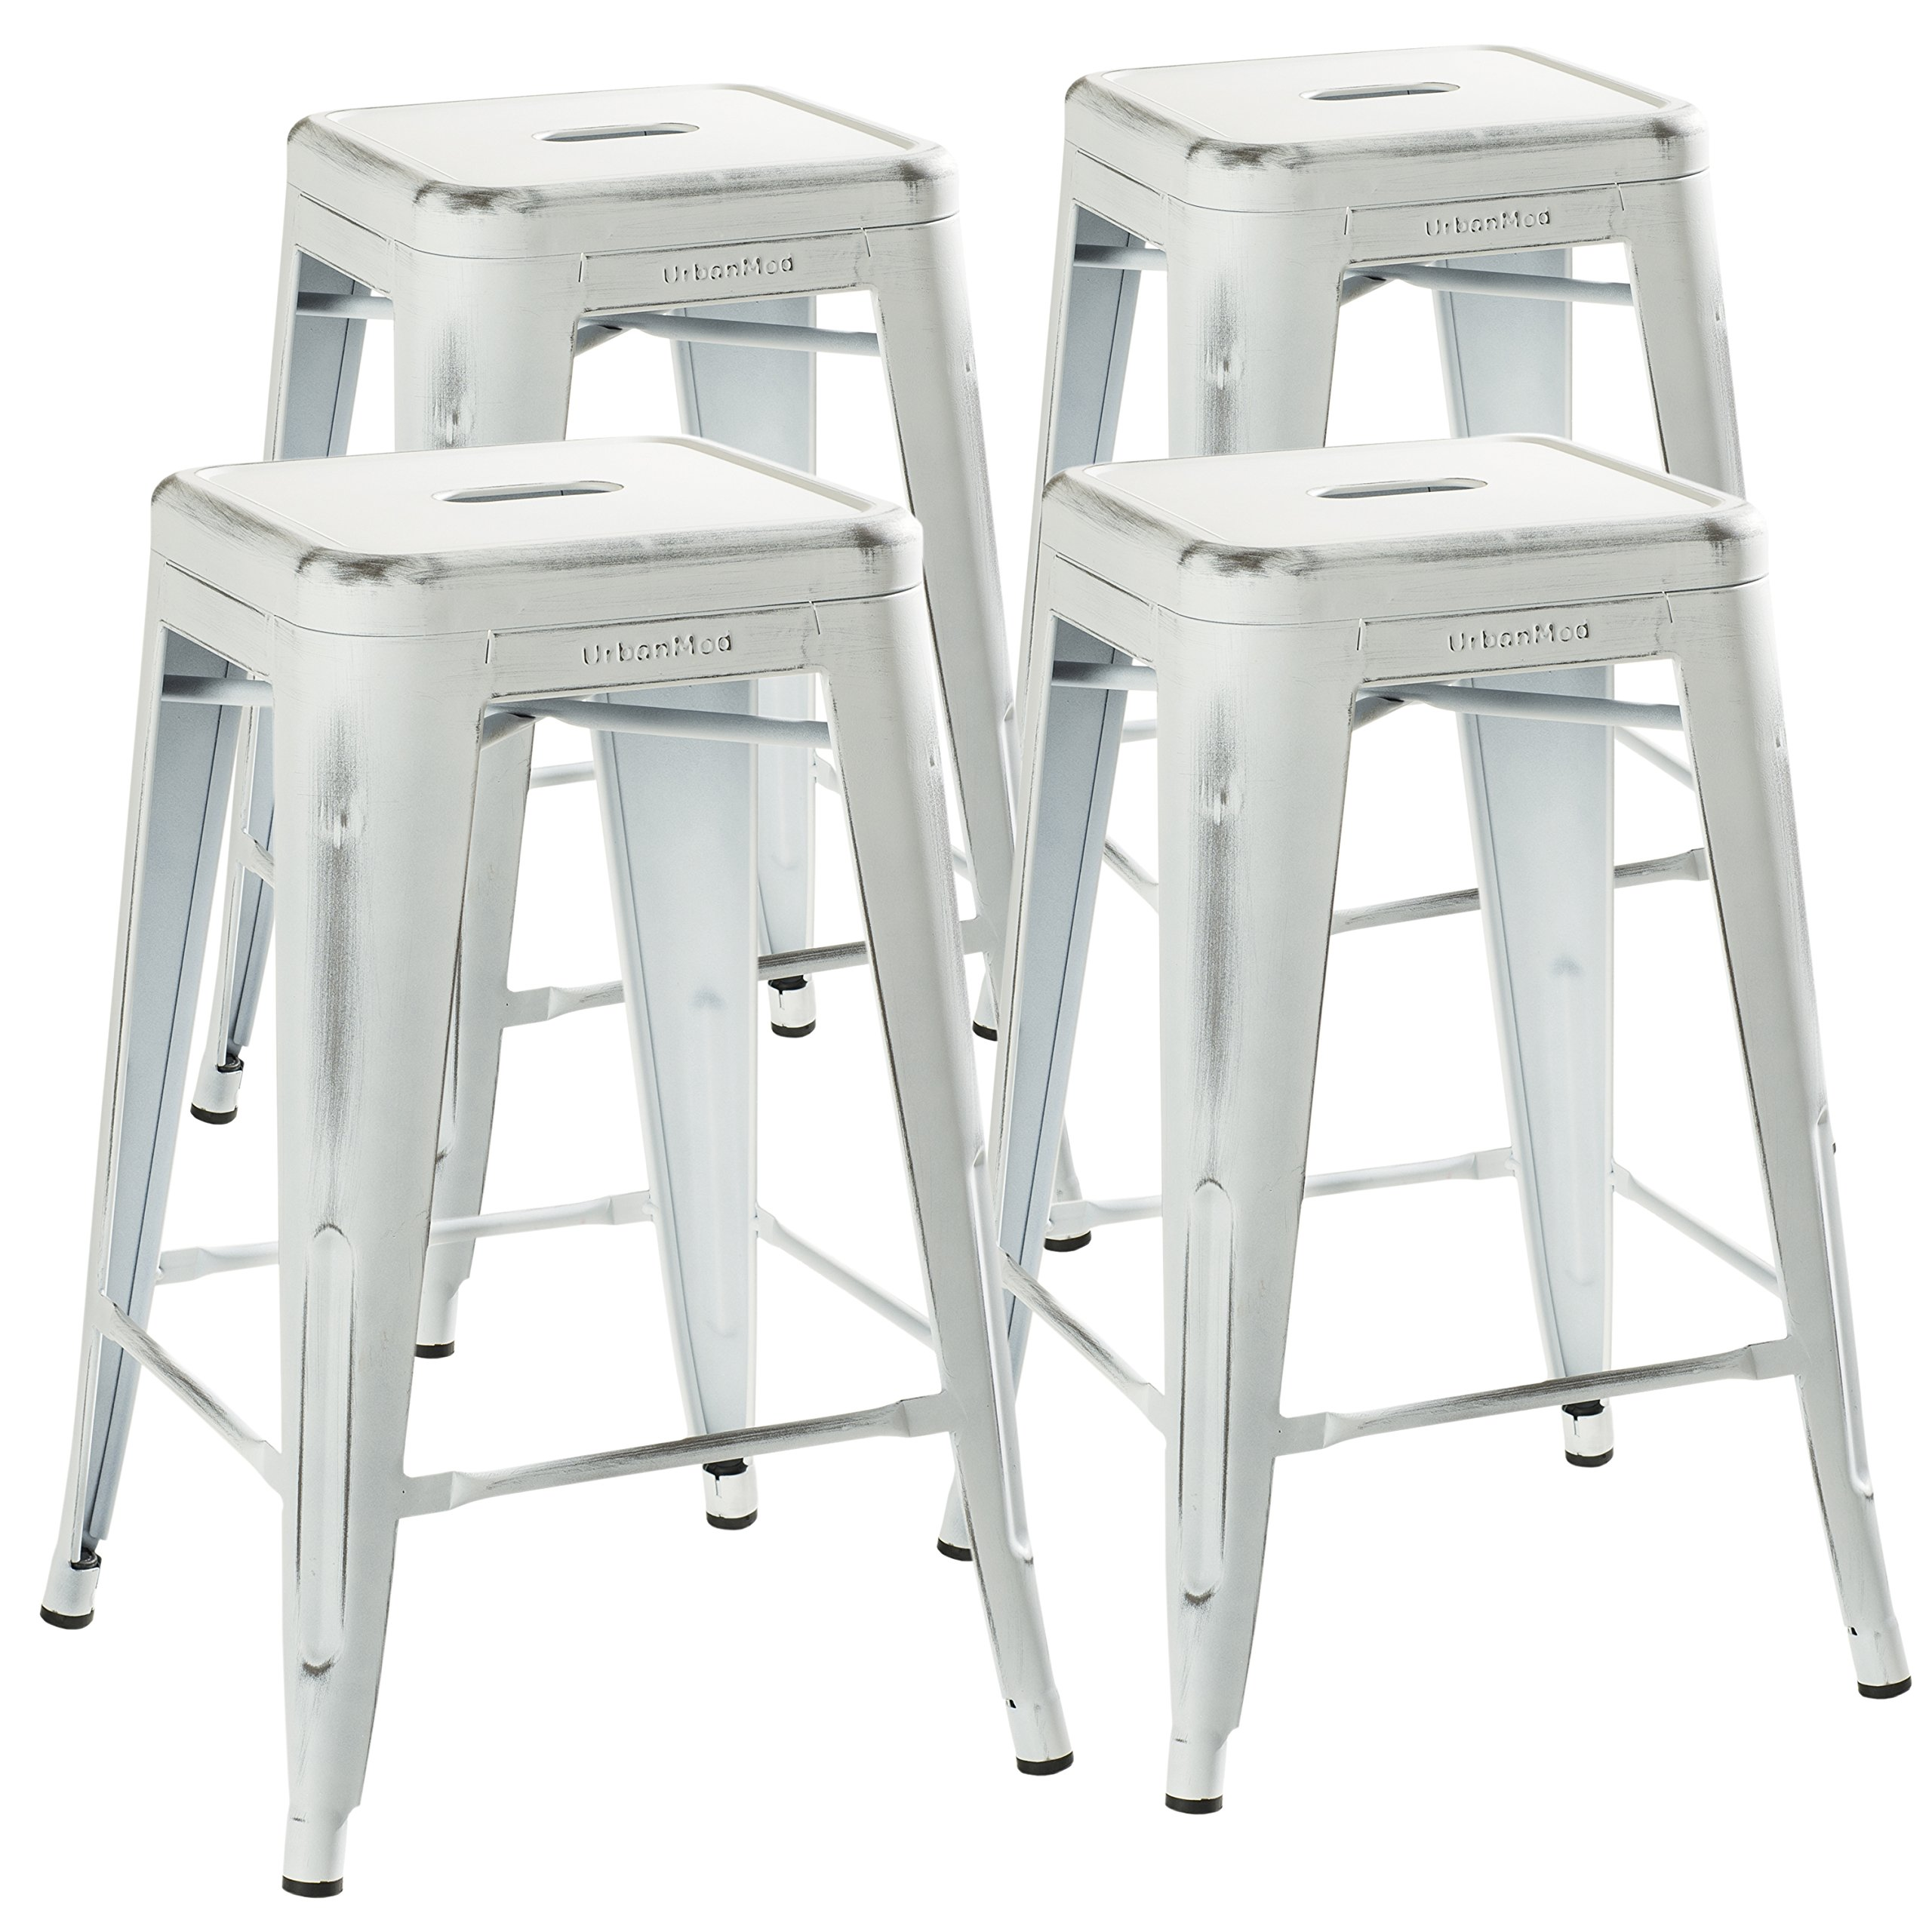 UrbanMod 24'' Stool Set of 4 by Distressed White Rustic Bar Stools -Counter Height Stools 330lb Capacity Metal Stool Chair - Stackable Indoor/Outdoor Bar Stools for Kitchen Counter and Island by UrbanMod